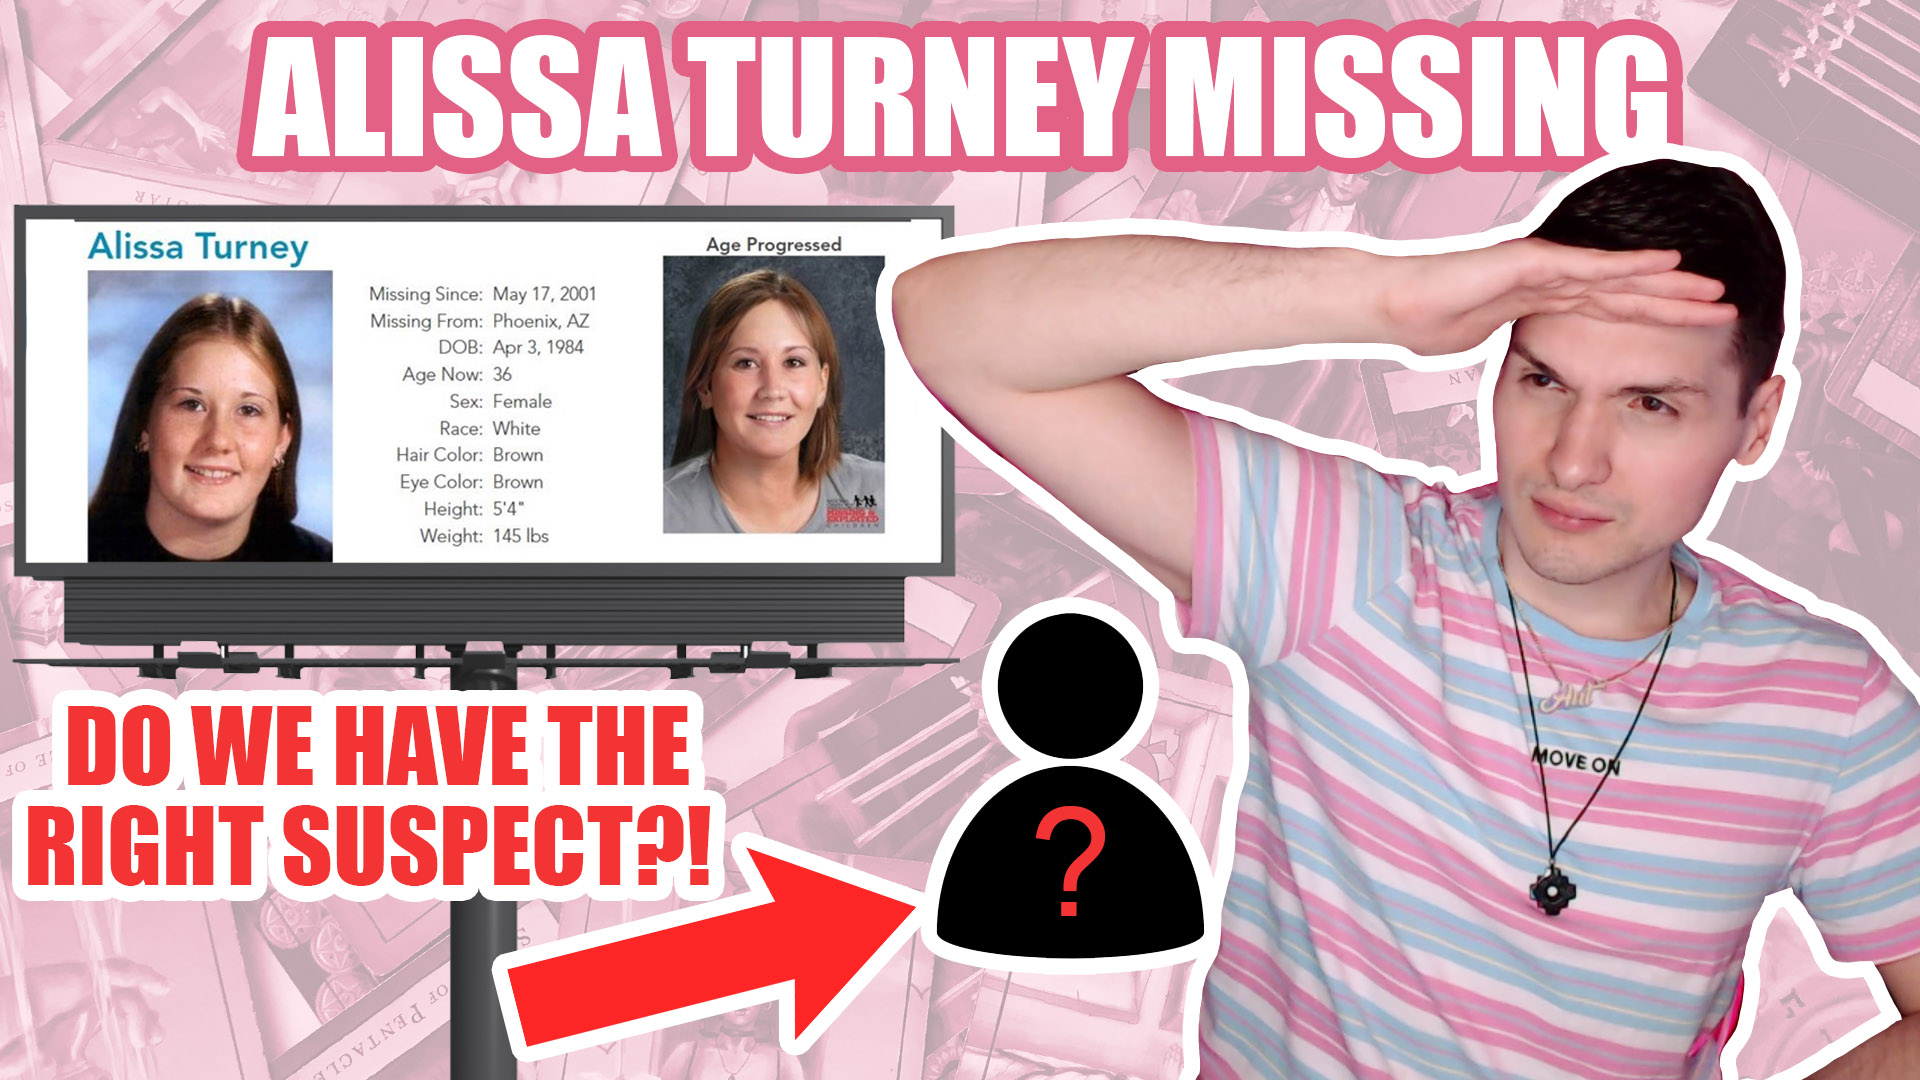 alissa turney missing